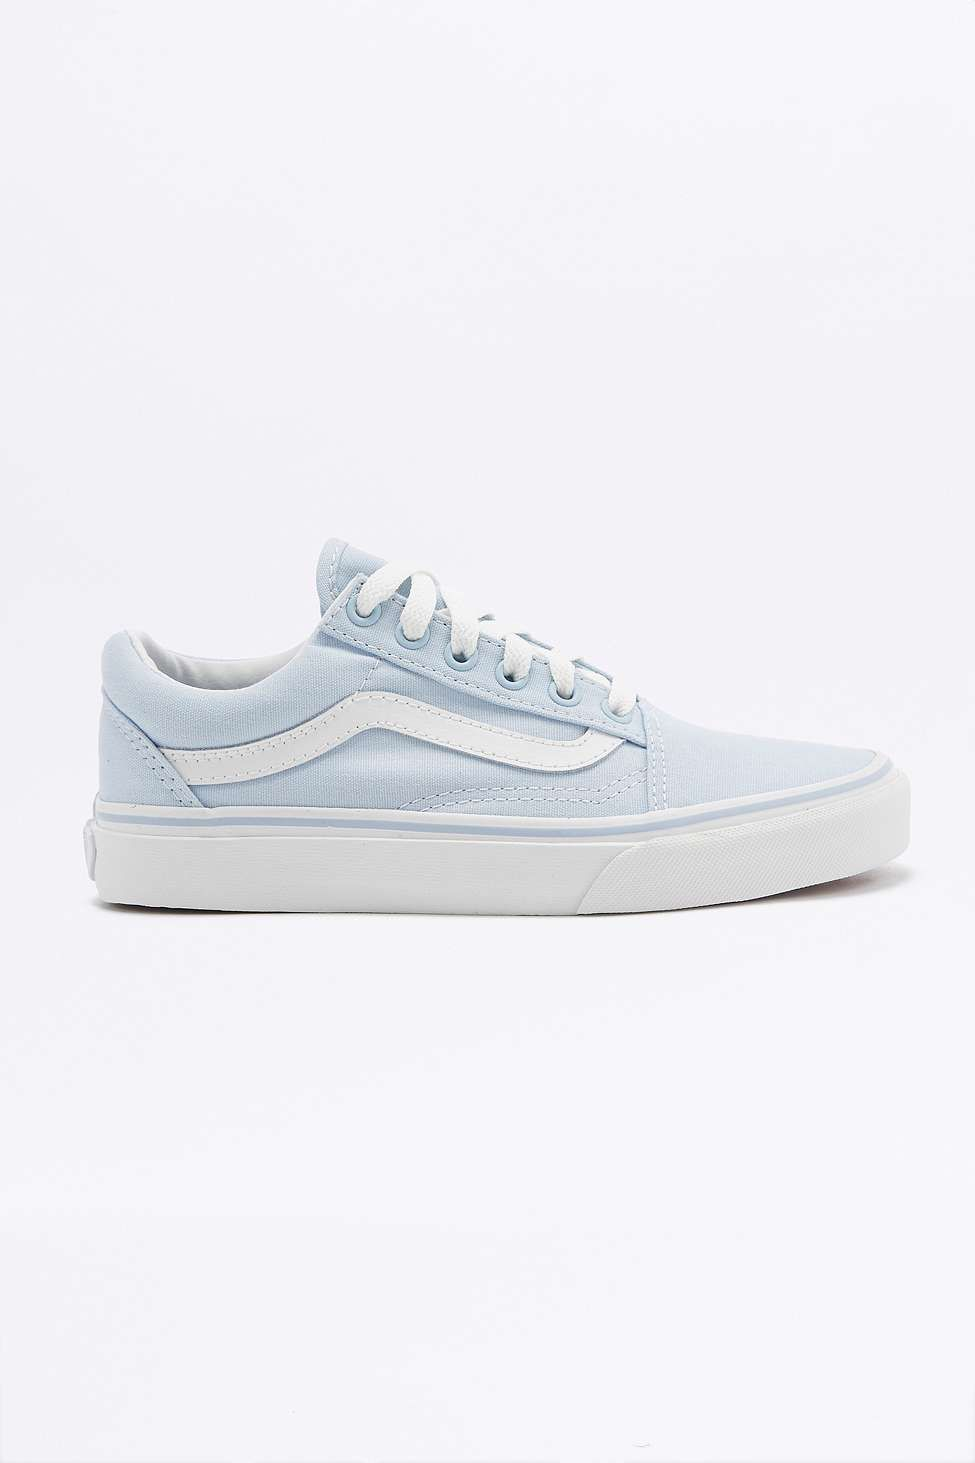 801b35357d Vans Old Skool Baby Blue Trainers